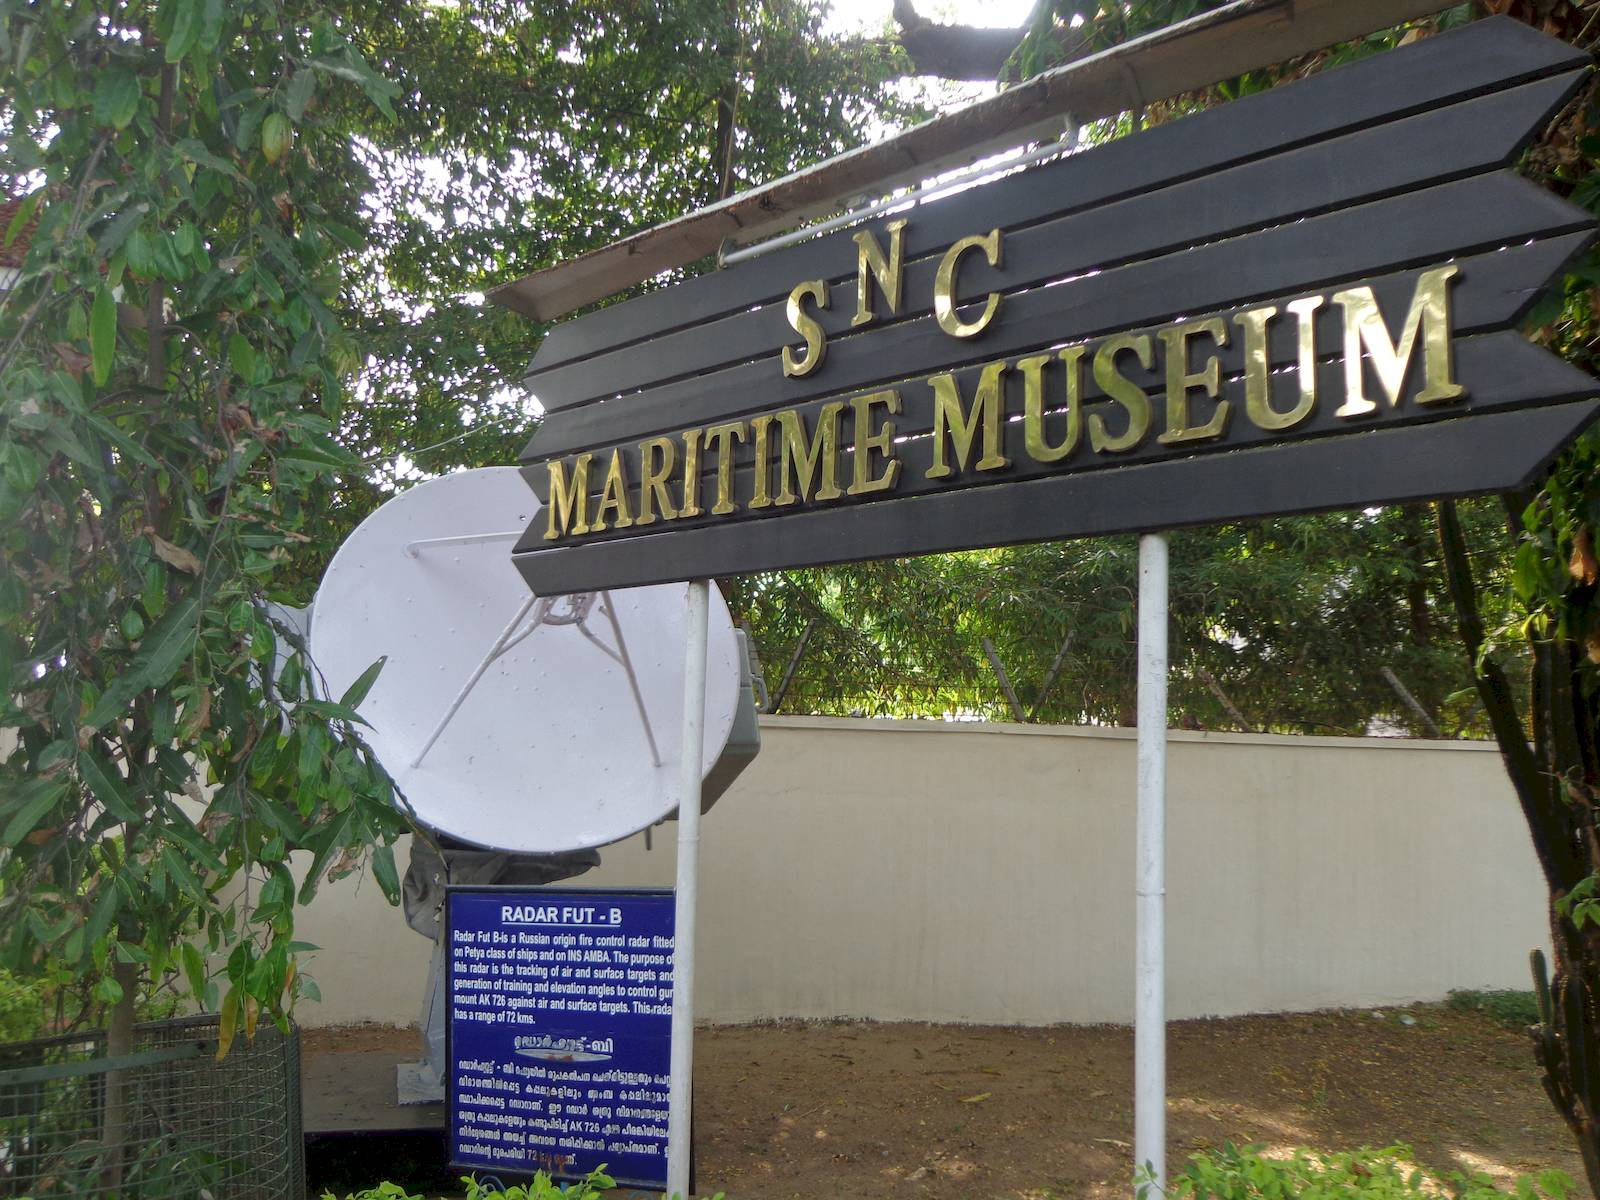 The entrance to the maritime museum.